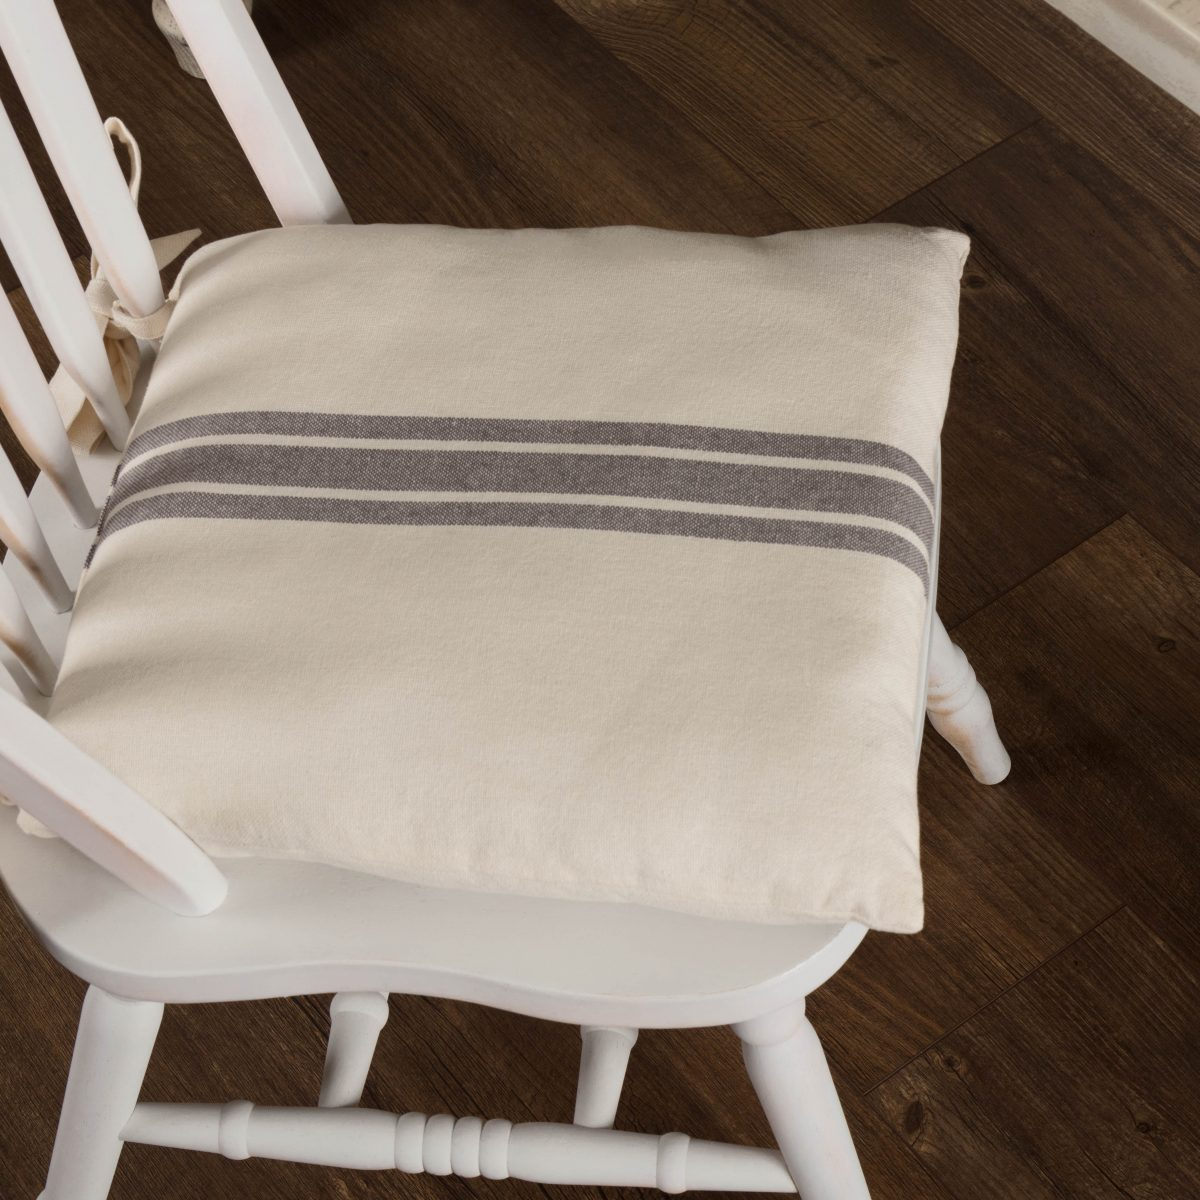 Grain Sack Chair Market Place Gray Grain Sack Chair Pad